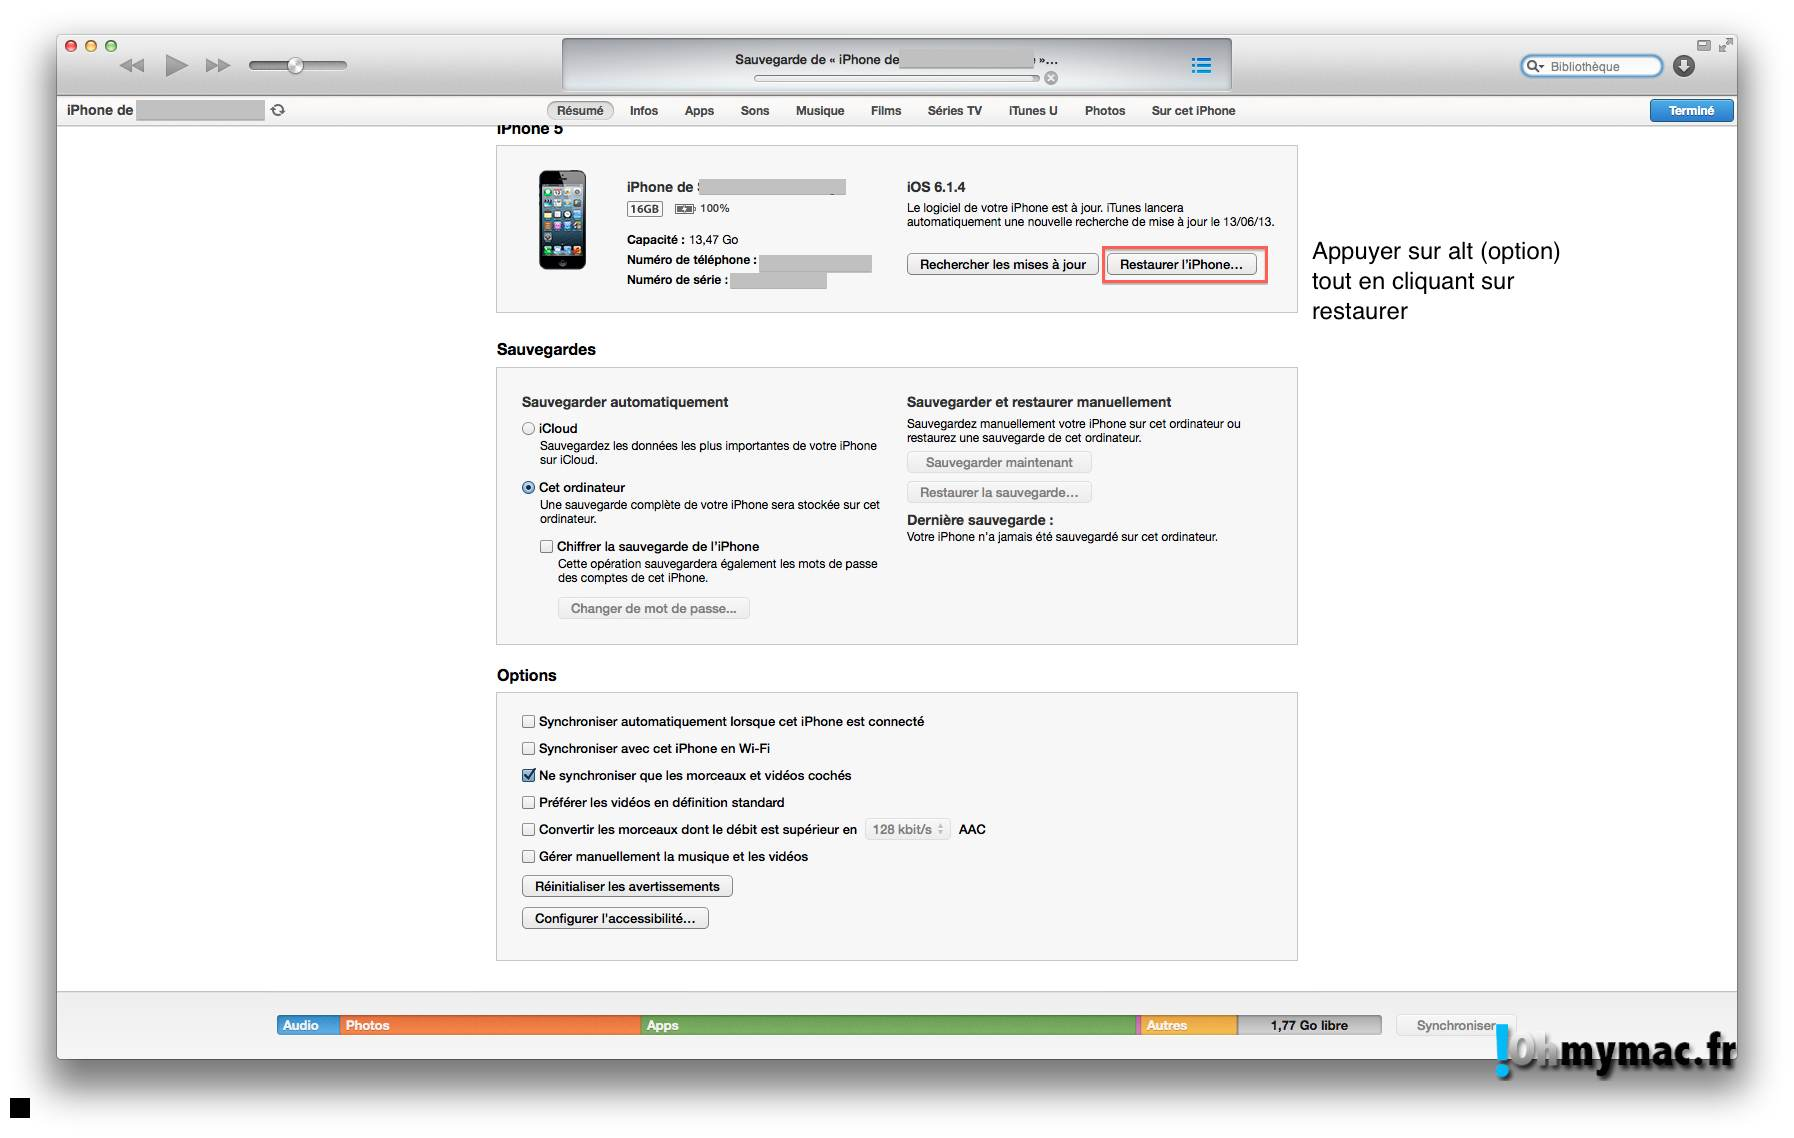 Ohmymac iOS 7 Beta: guide d'installation détaillé 06